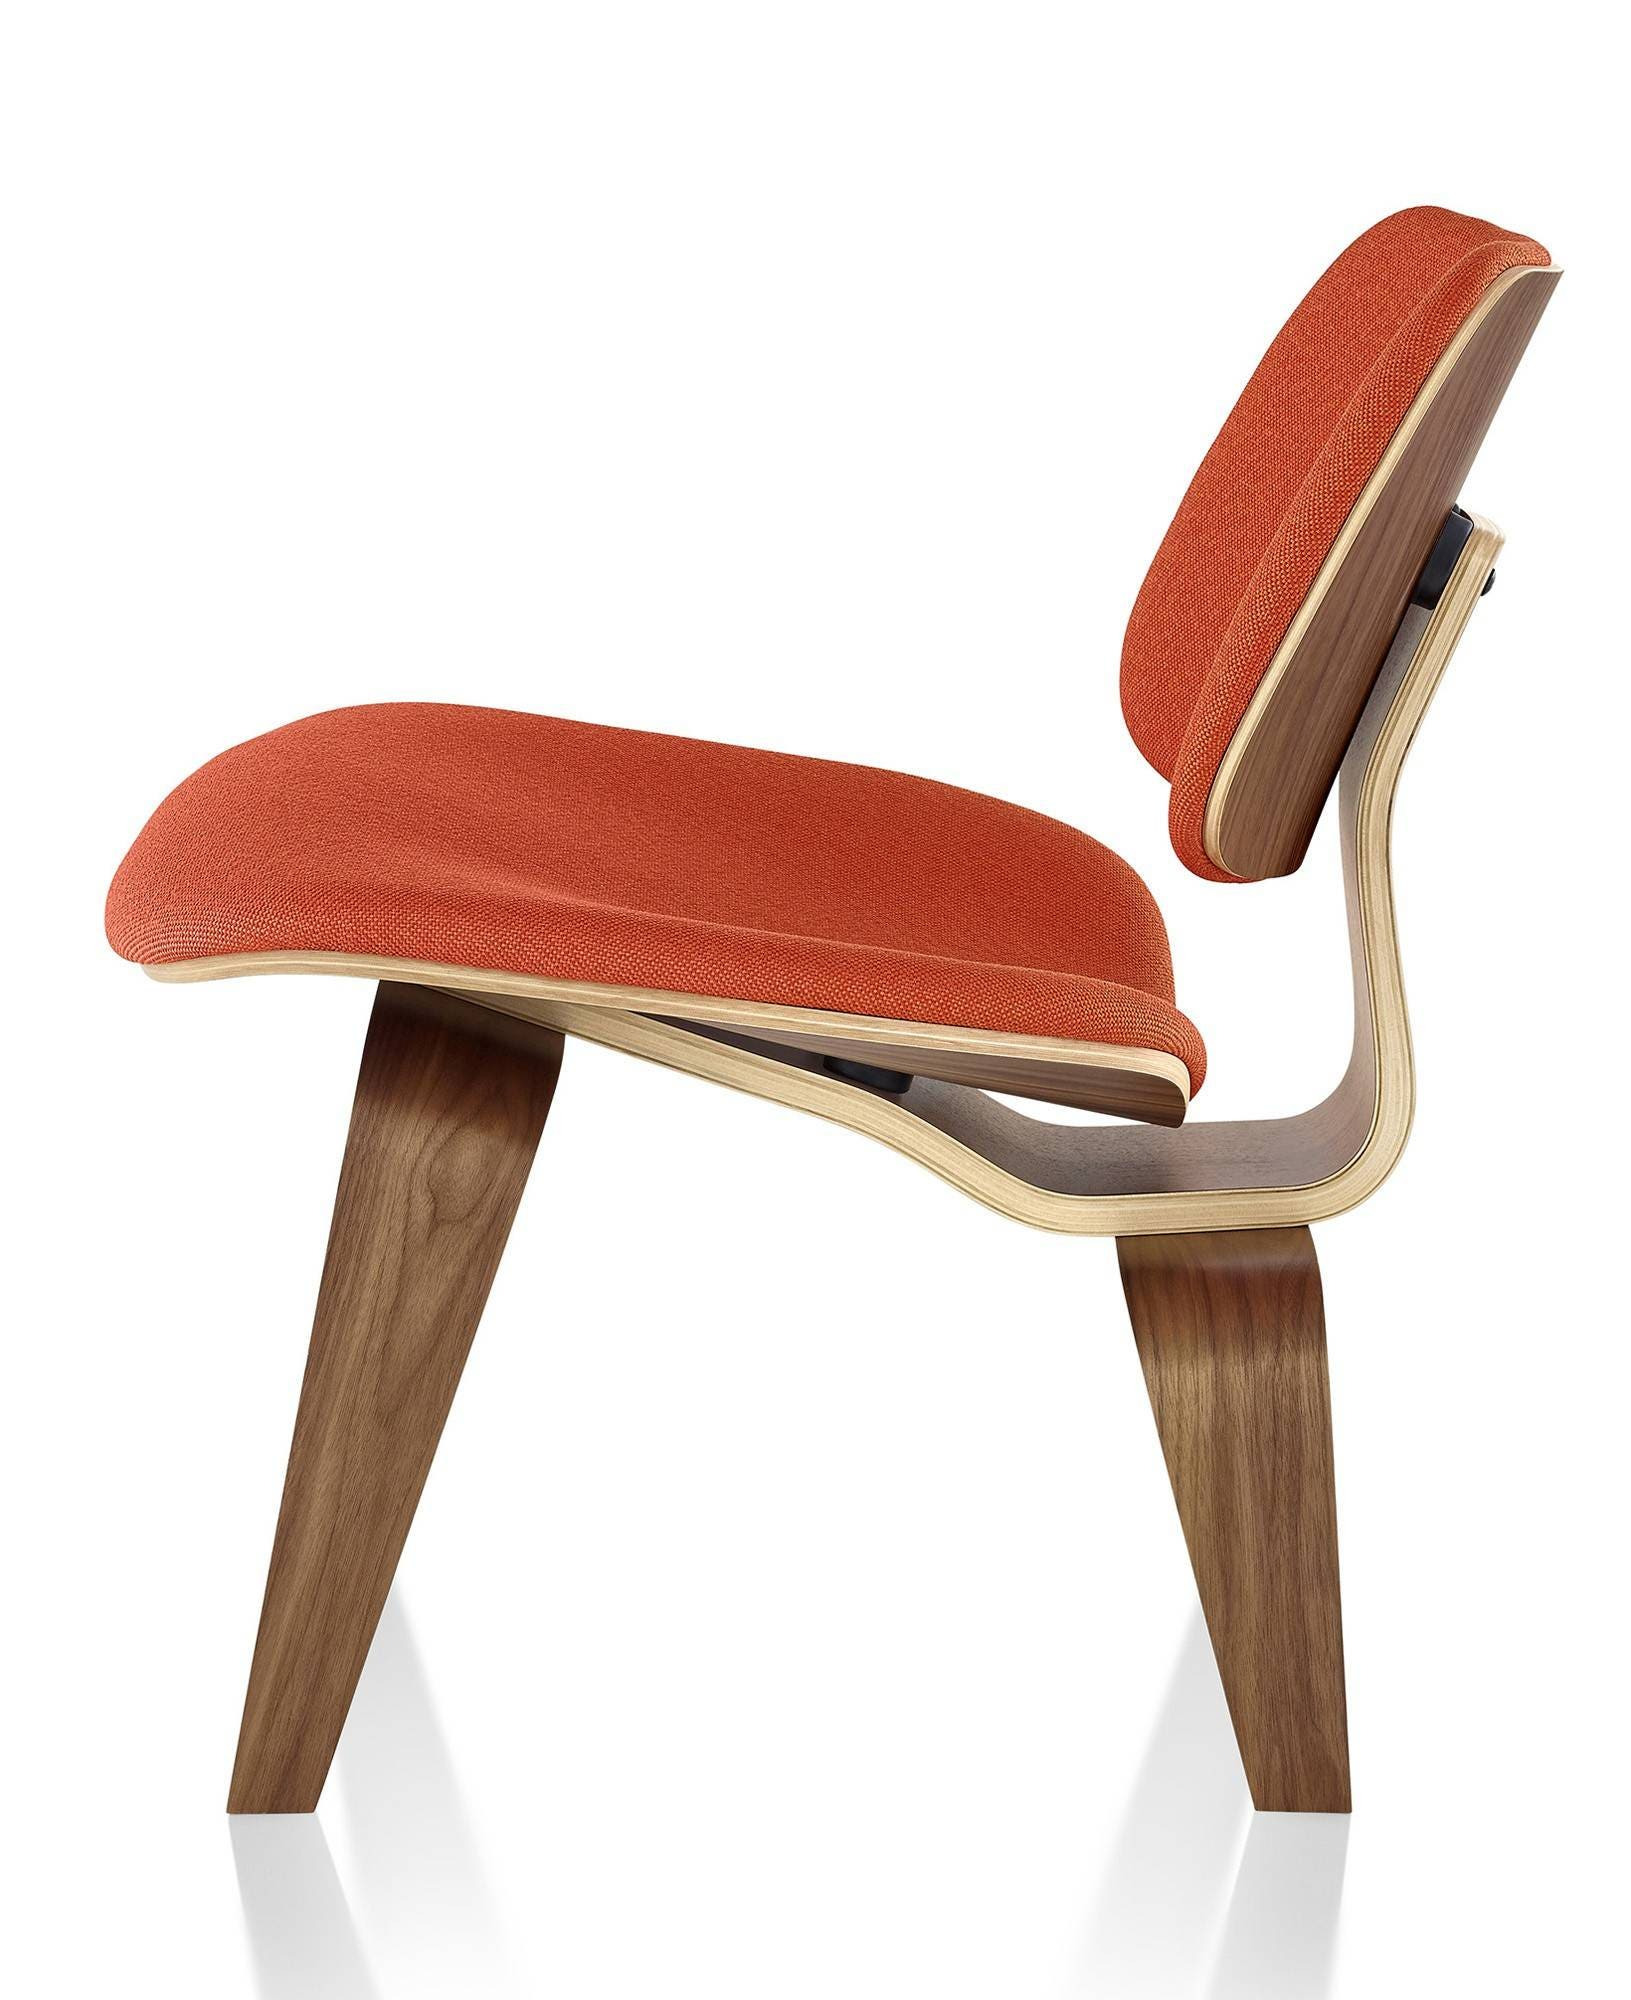 Herman Miller Eames® Molded Plywood Upholstered Lounge Chair - Wood Legs